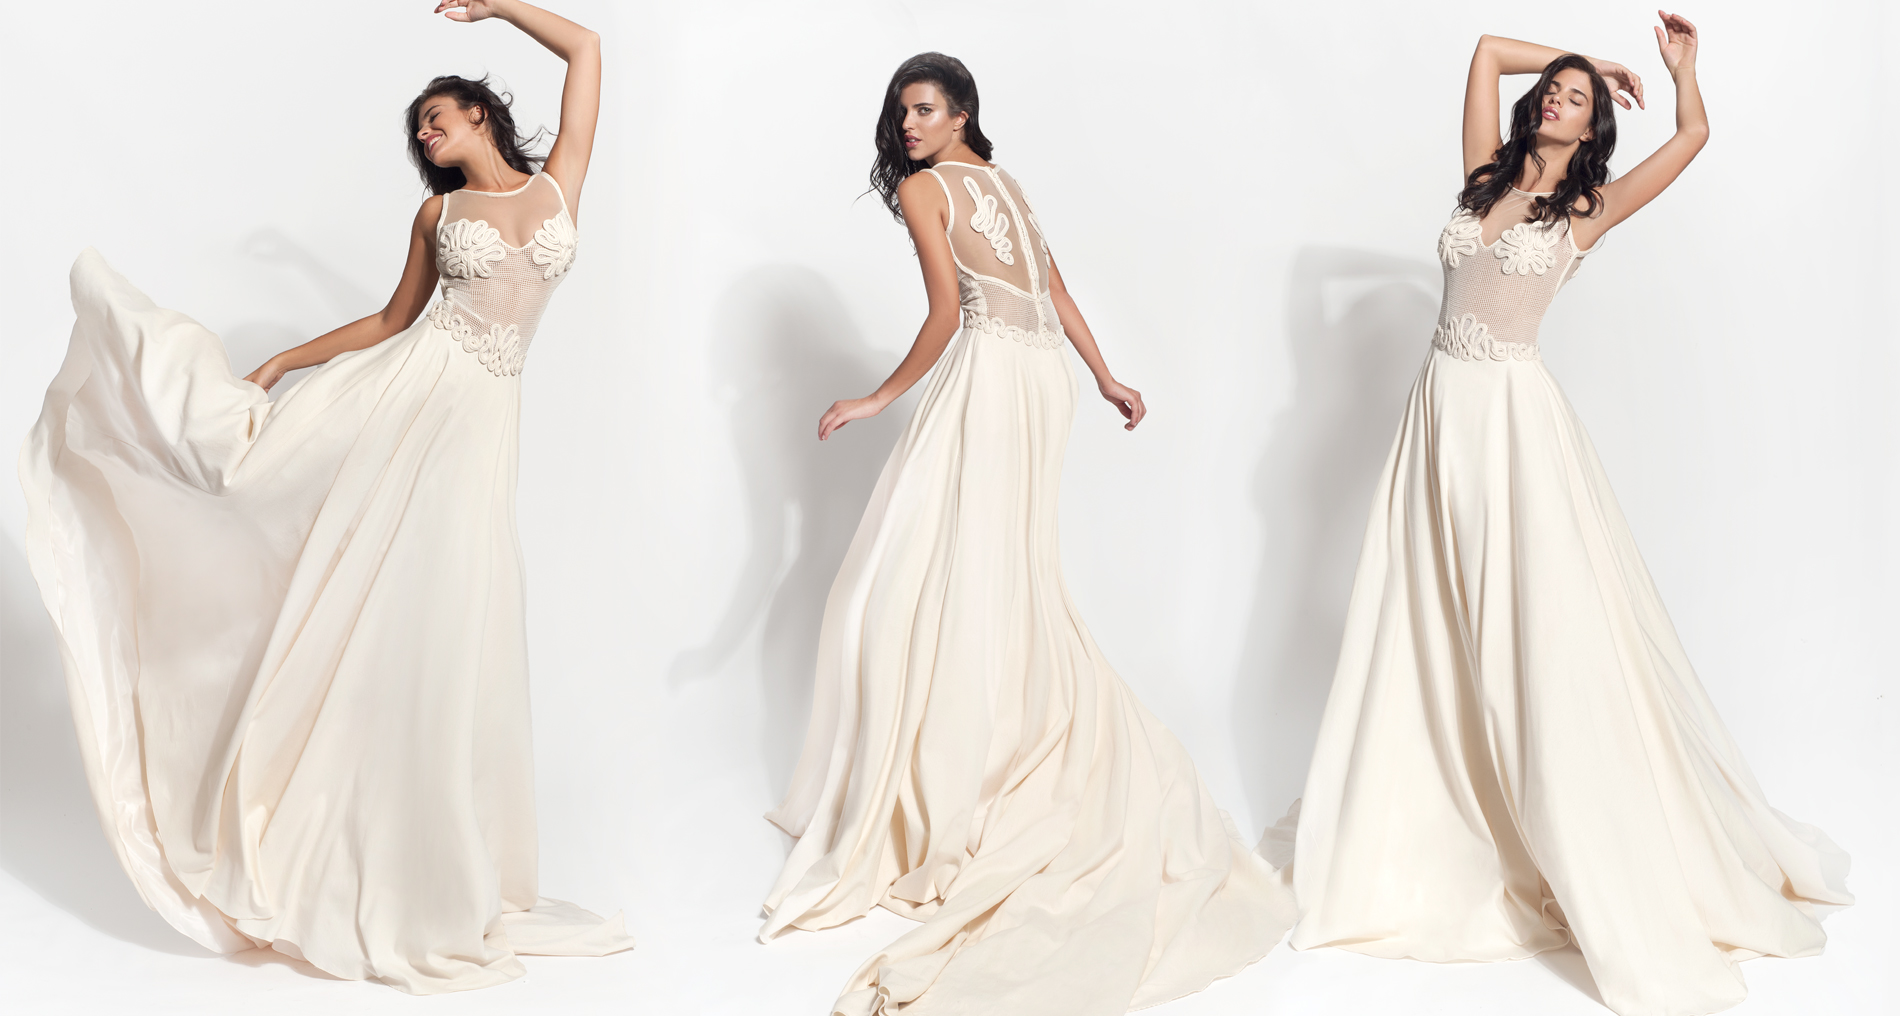 Adeia wedding dress from  Hellenic Vintage Core Collection